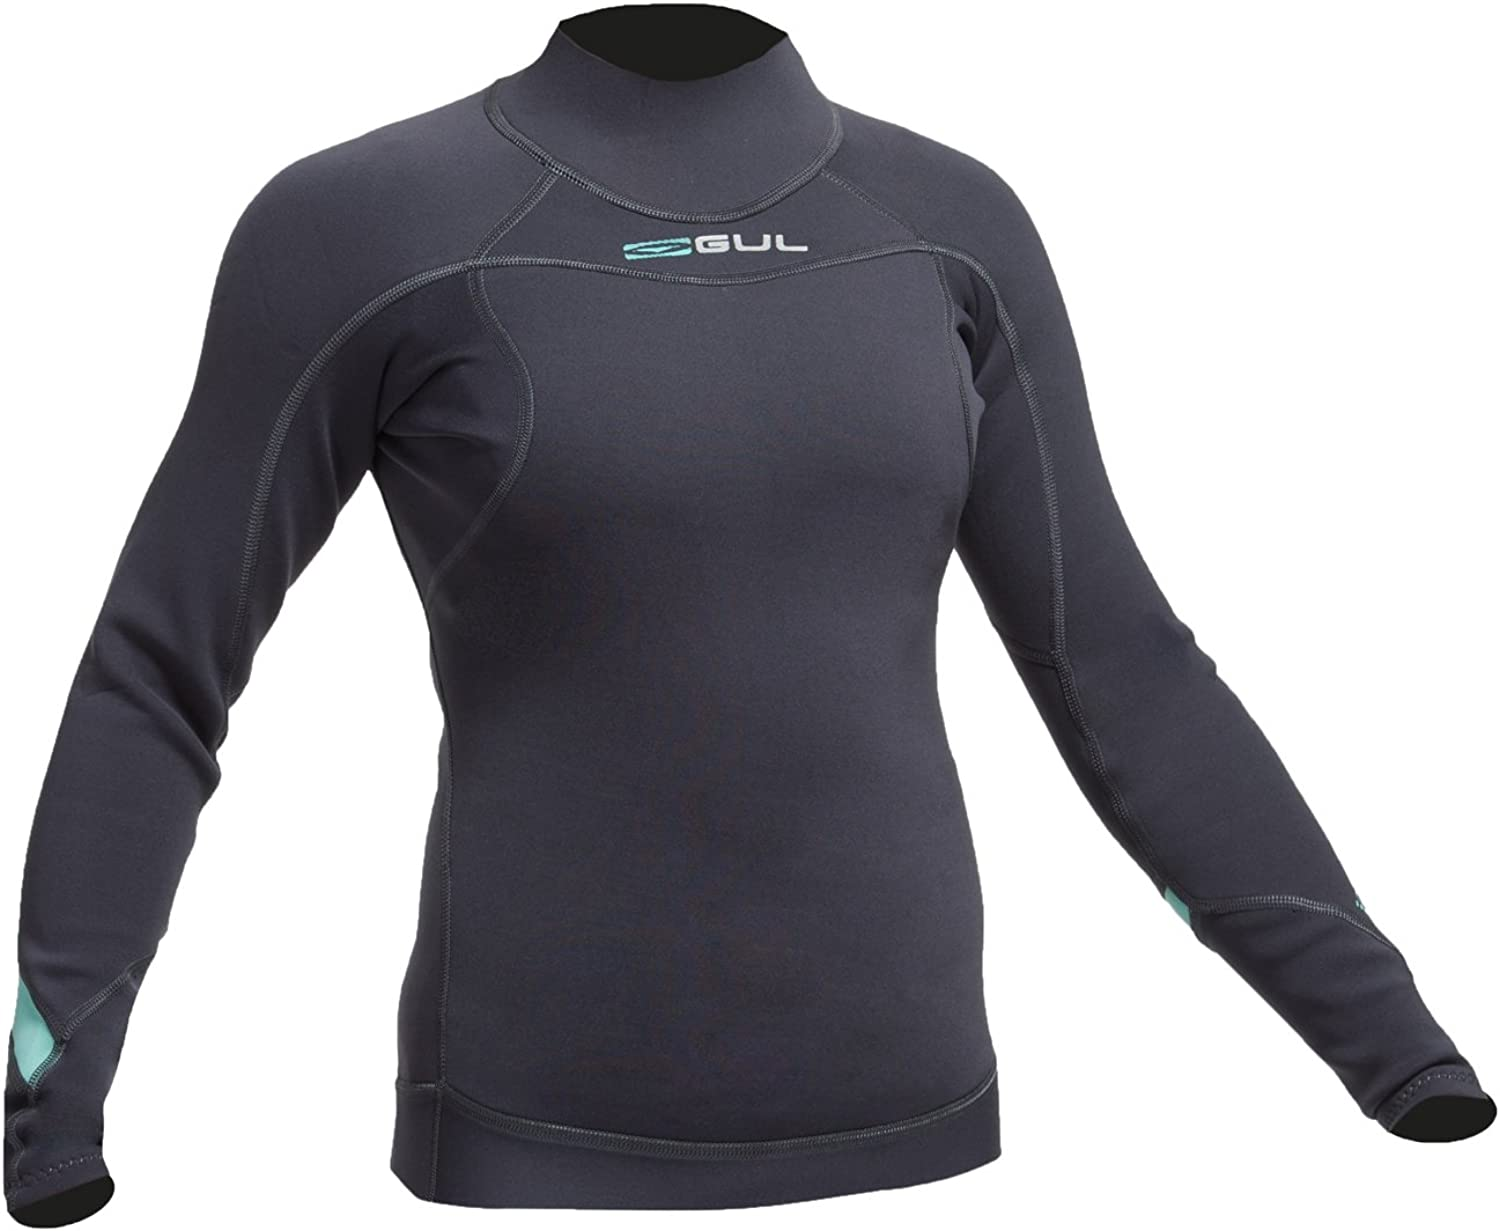 Gul Womens Code Zero 3MM Long Sleeve Thermo Top JetEasy Stretch Thermal Lining. WaterproofBLINDSTITCHED  Seam construction